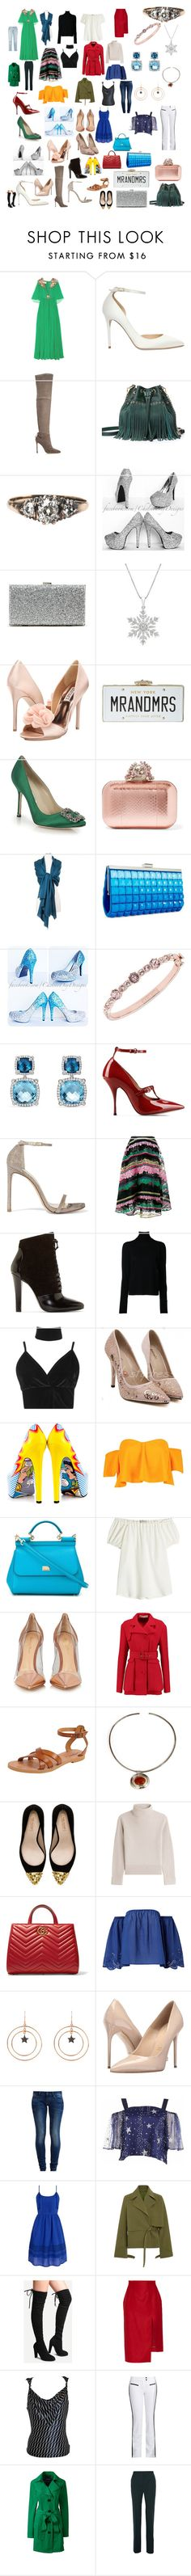 """""""Nice"""" by mikahelaine ❤ liked on Polyvore featuring Gucci, Jimmy Choo, Pour La Victoire, Sole Society, Badgley Mischka, Kate Spade, Manolo Blahnik, INC International Concepts, Givenchy and David Yurman"""